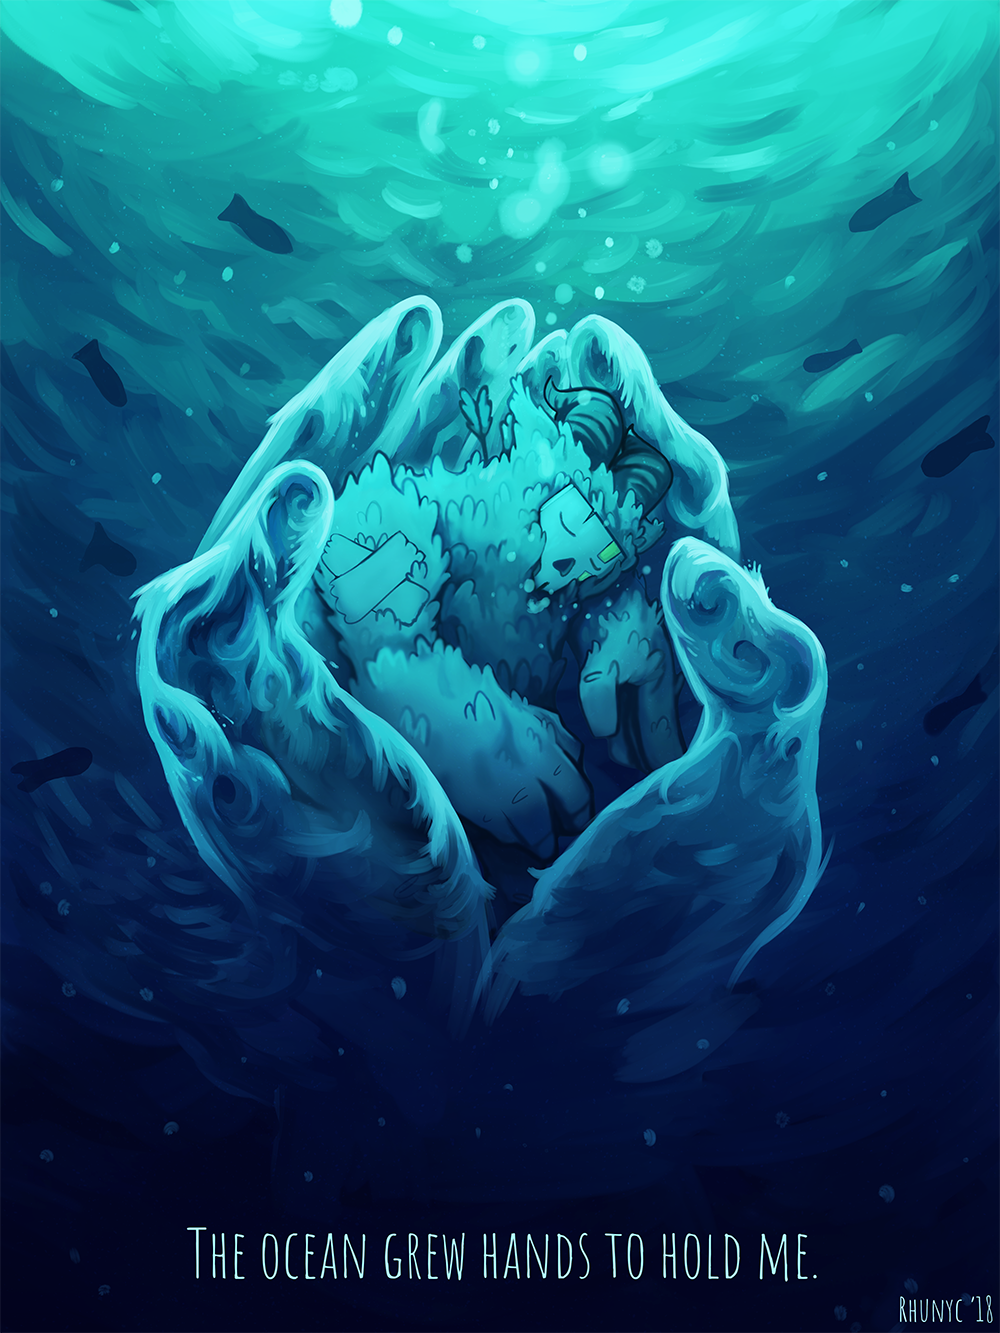 The ocean grew hands to hold me